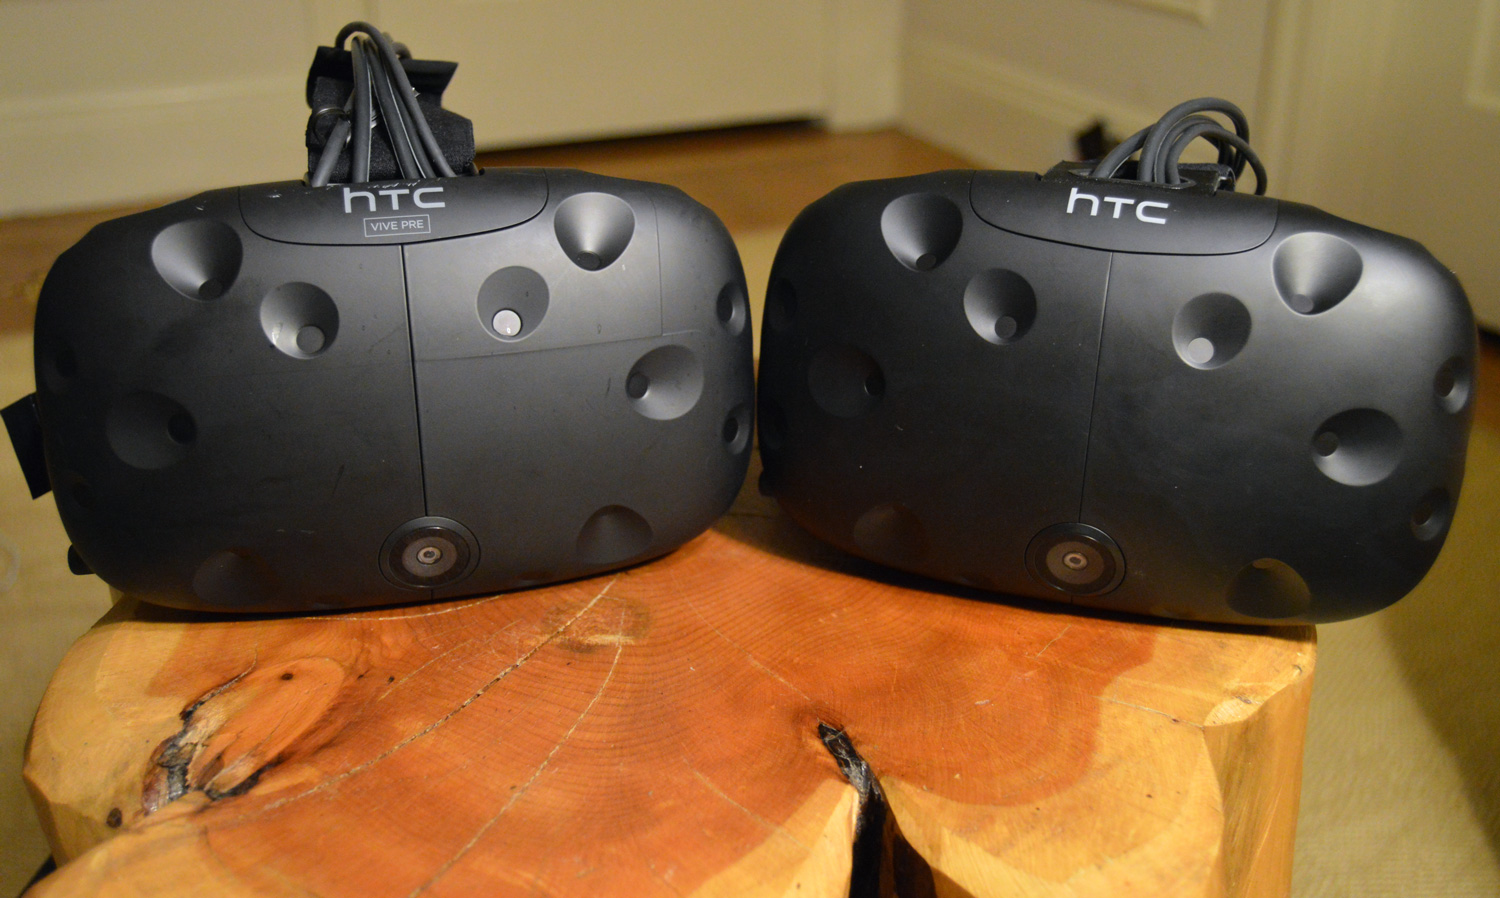 The HTC Vive Pre (Left) and the HTC Vive consumer edition (Right) are nearly identical.